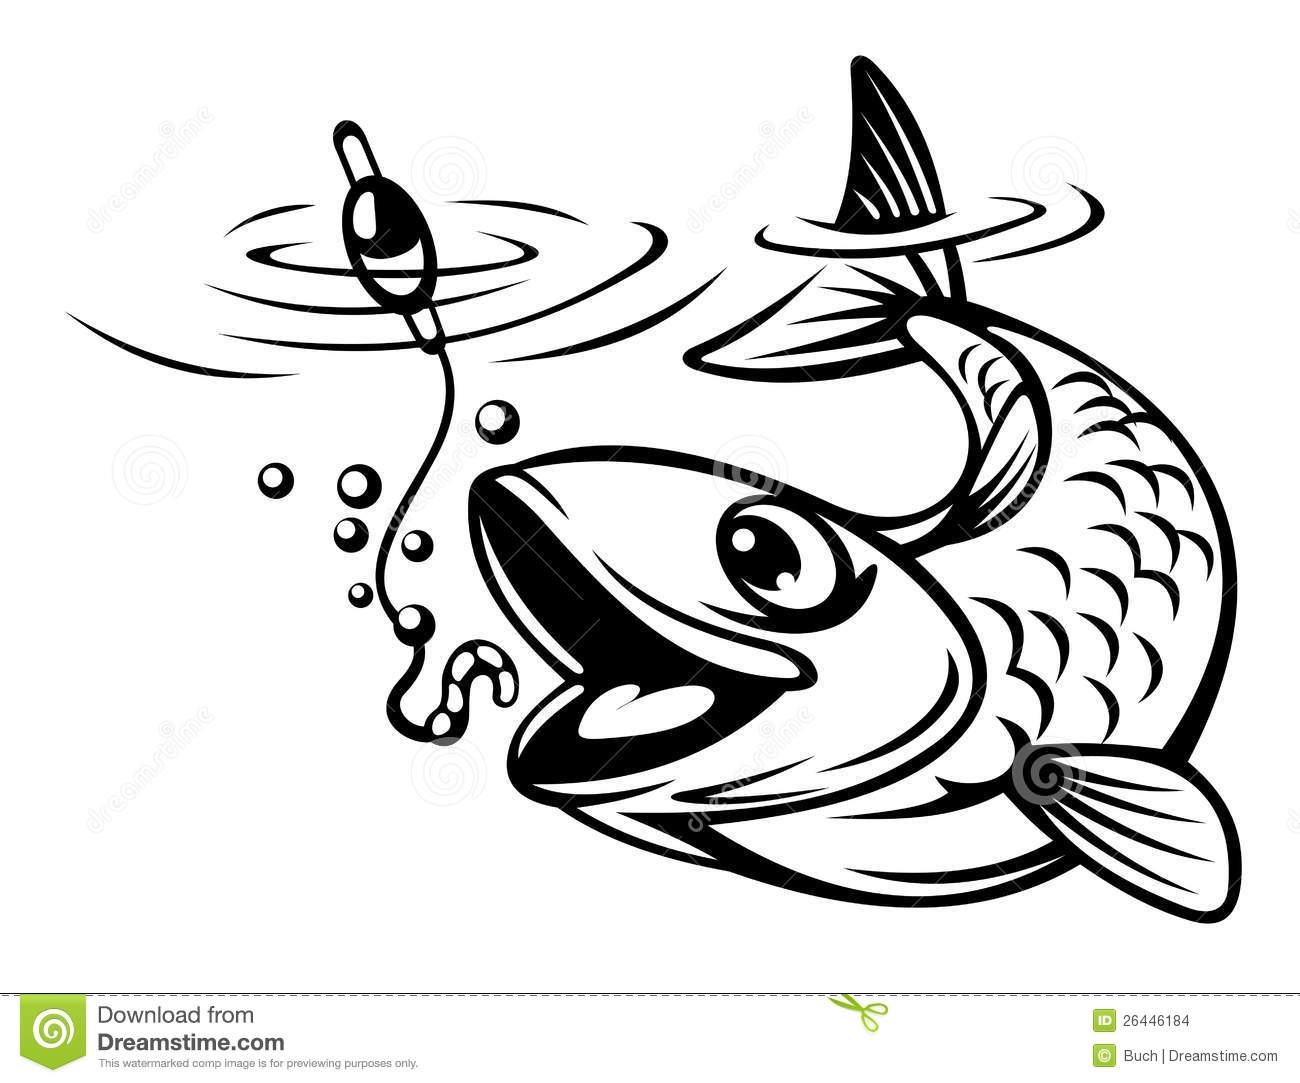 Fishing hook clipart Beautiful Fish on hook clipart Clipart.